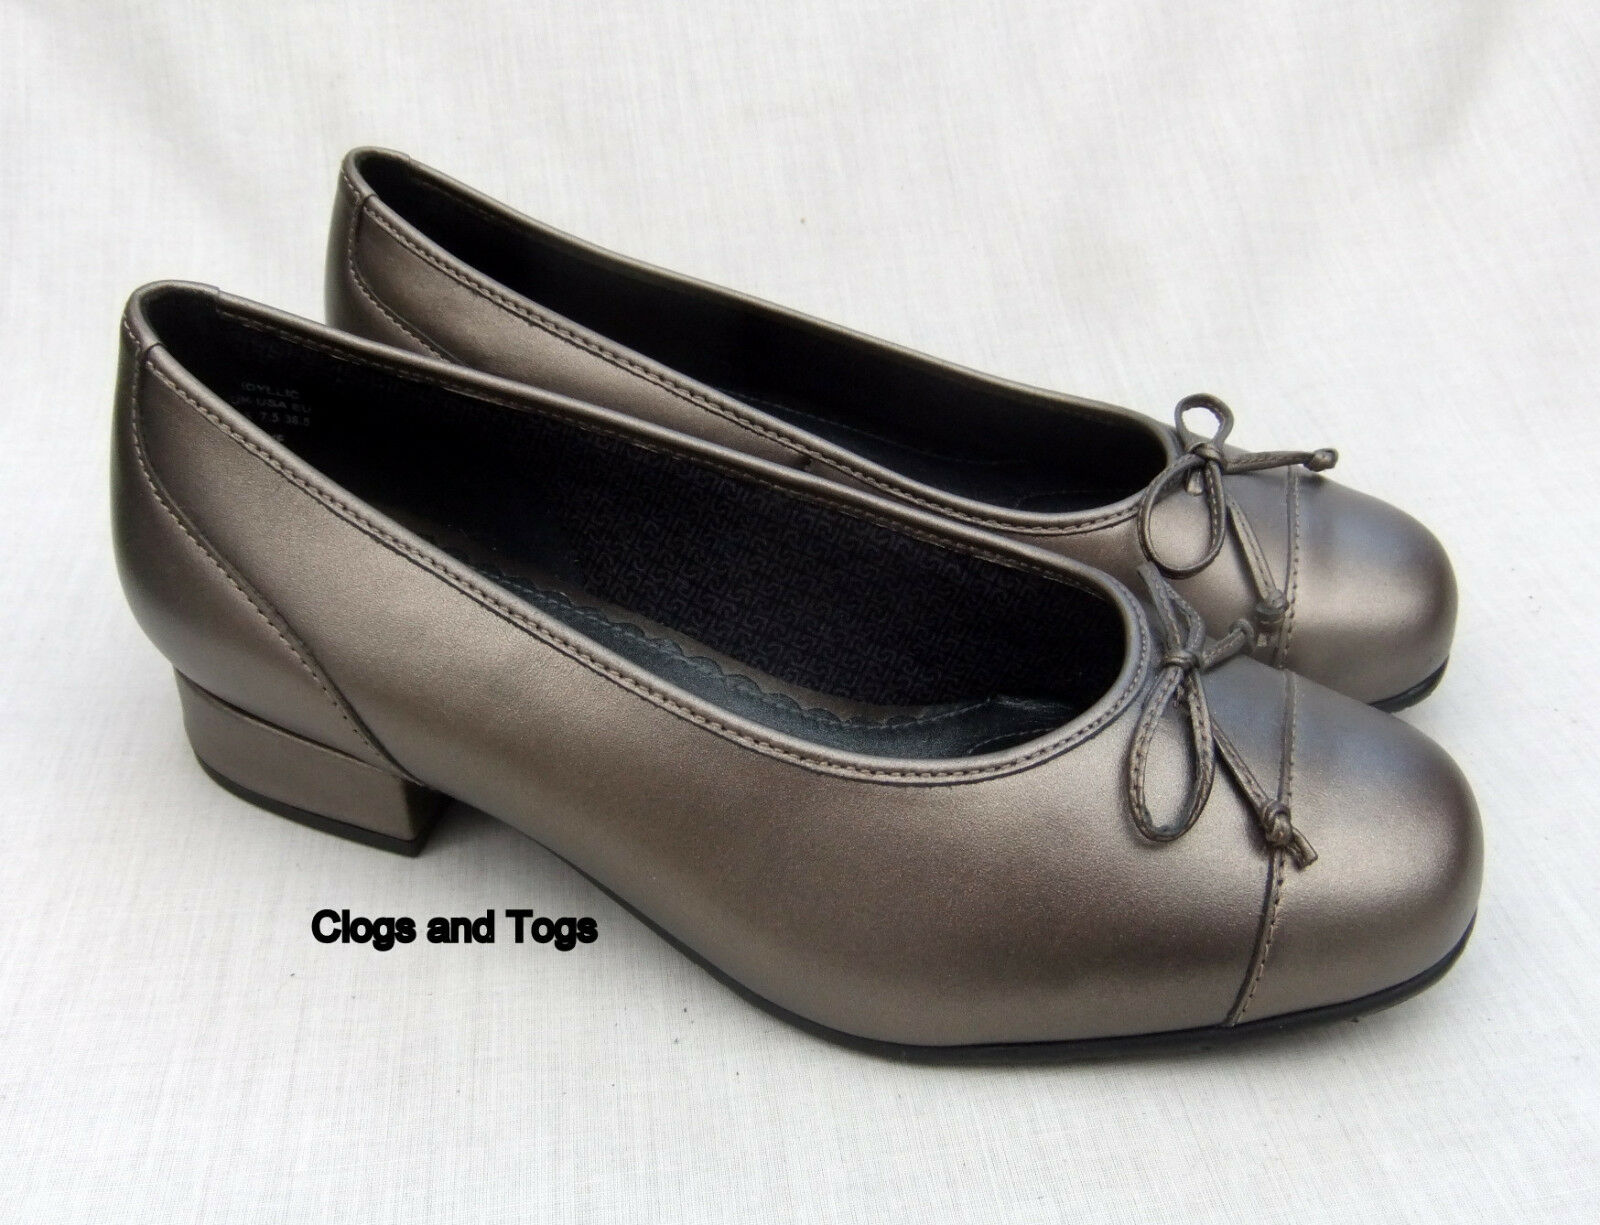 NEW HOTTER IDYLLIC femmes BRONZE LEATHER chaussures Taille 5.5   38.5 WIDE FIT